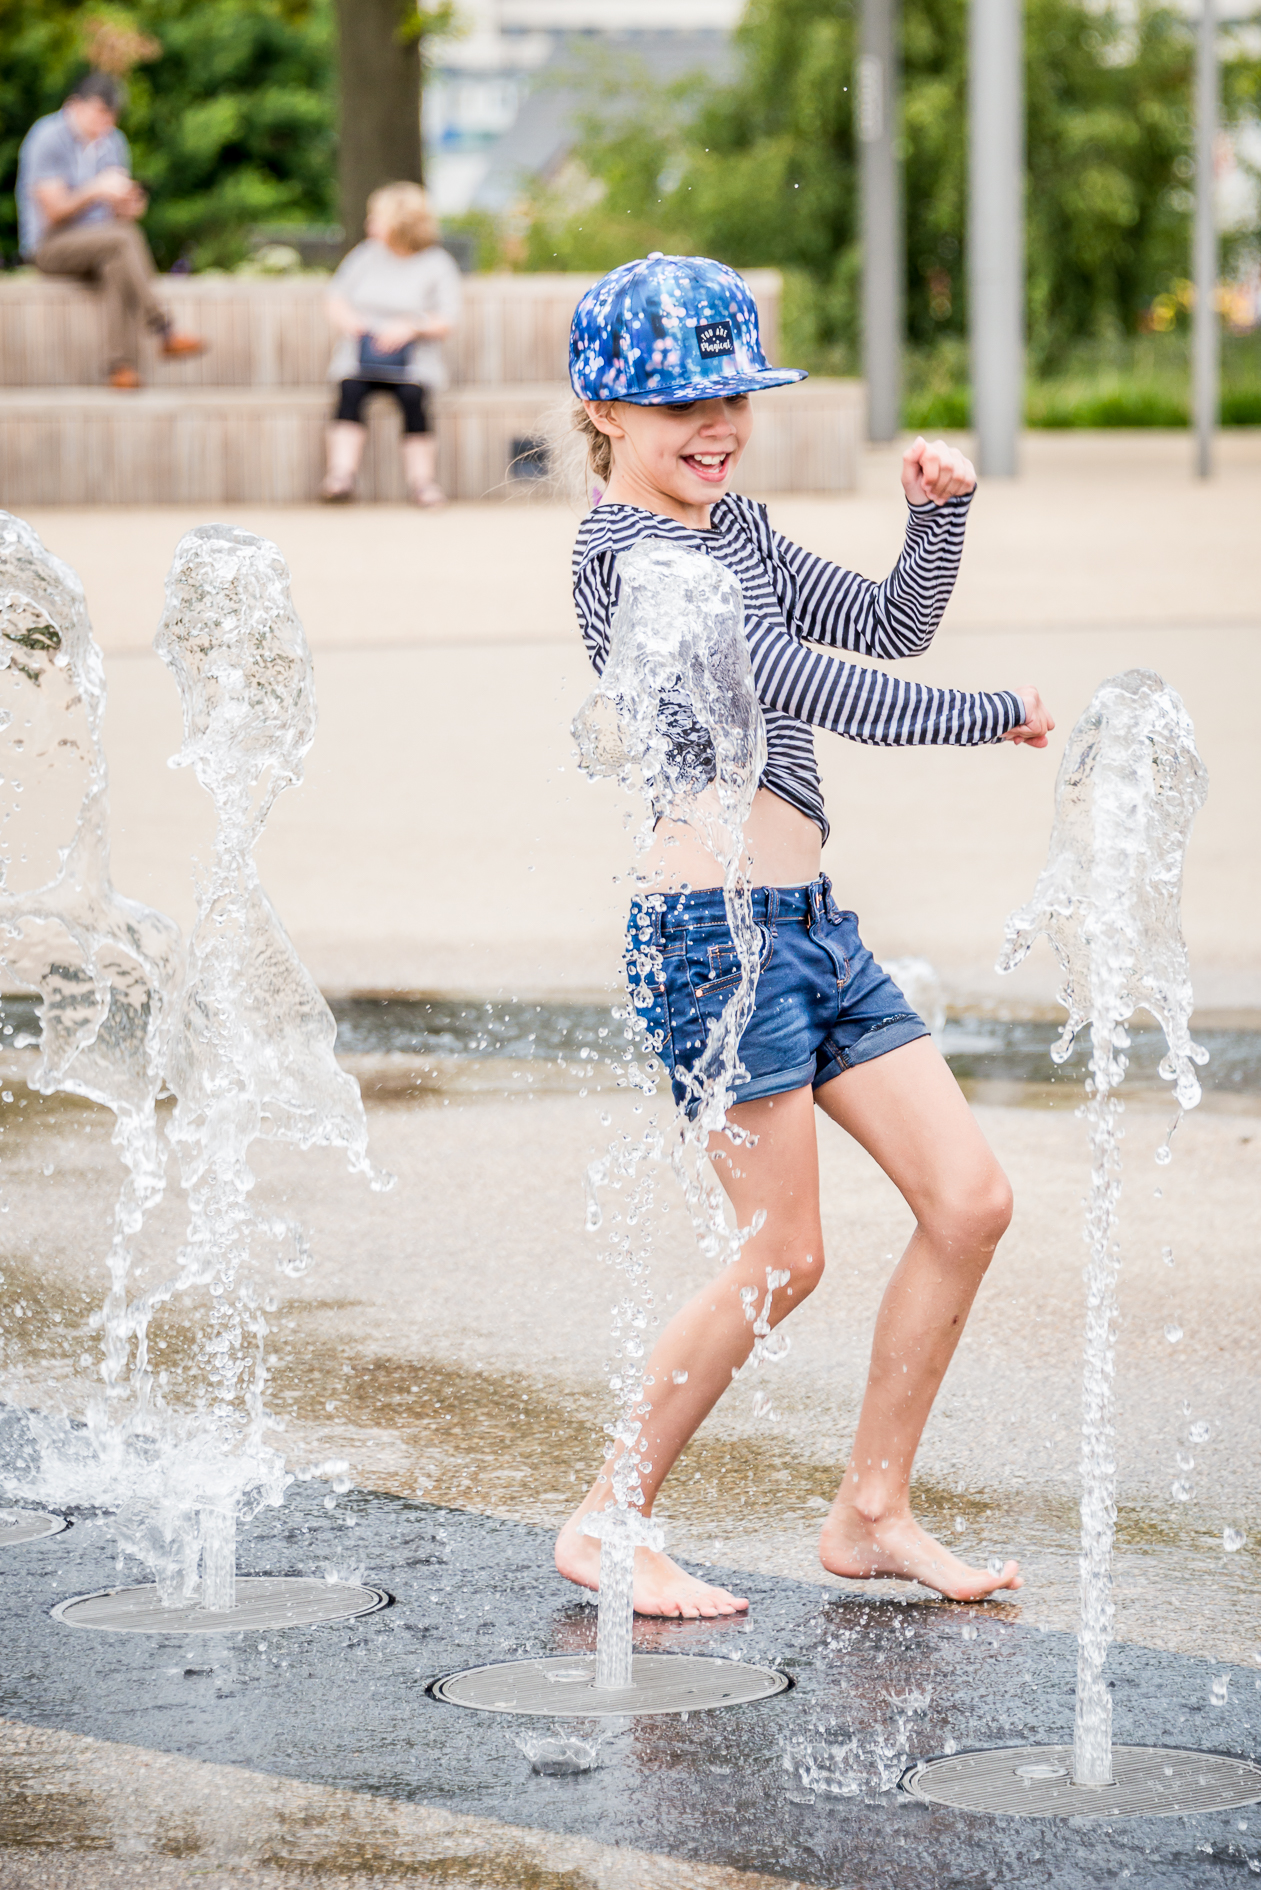 fountains-kids-fun-day-lifestyle-photography